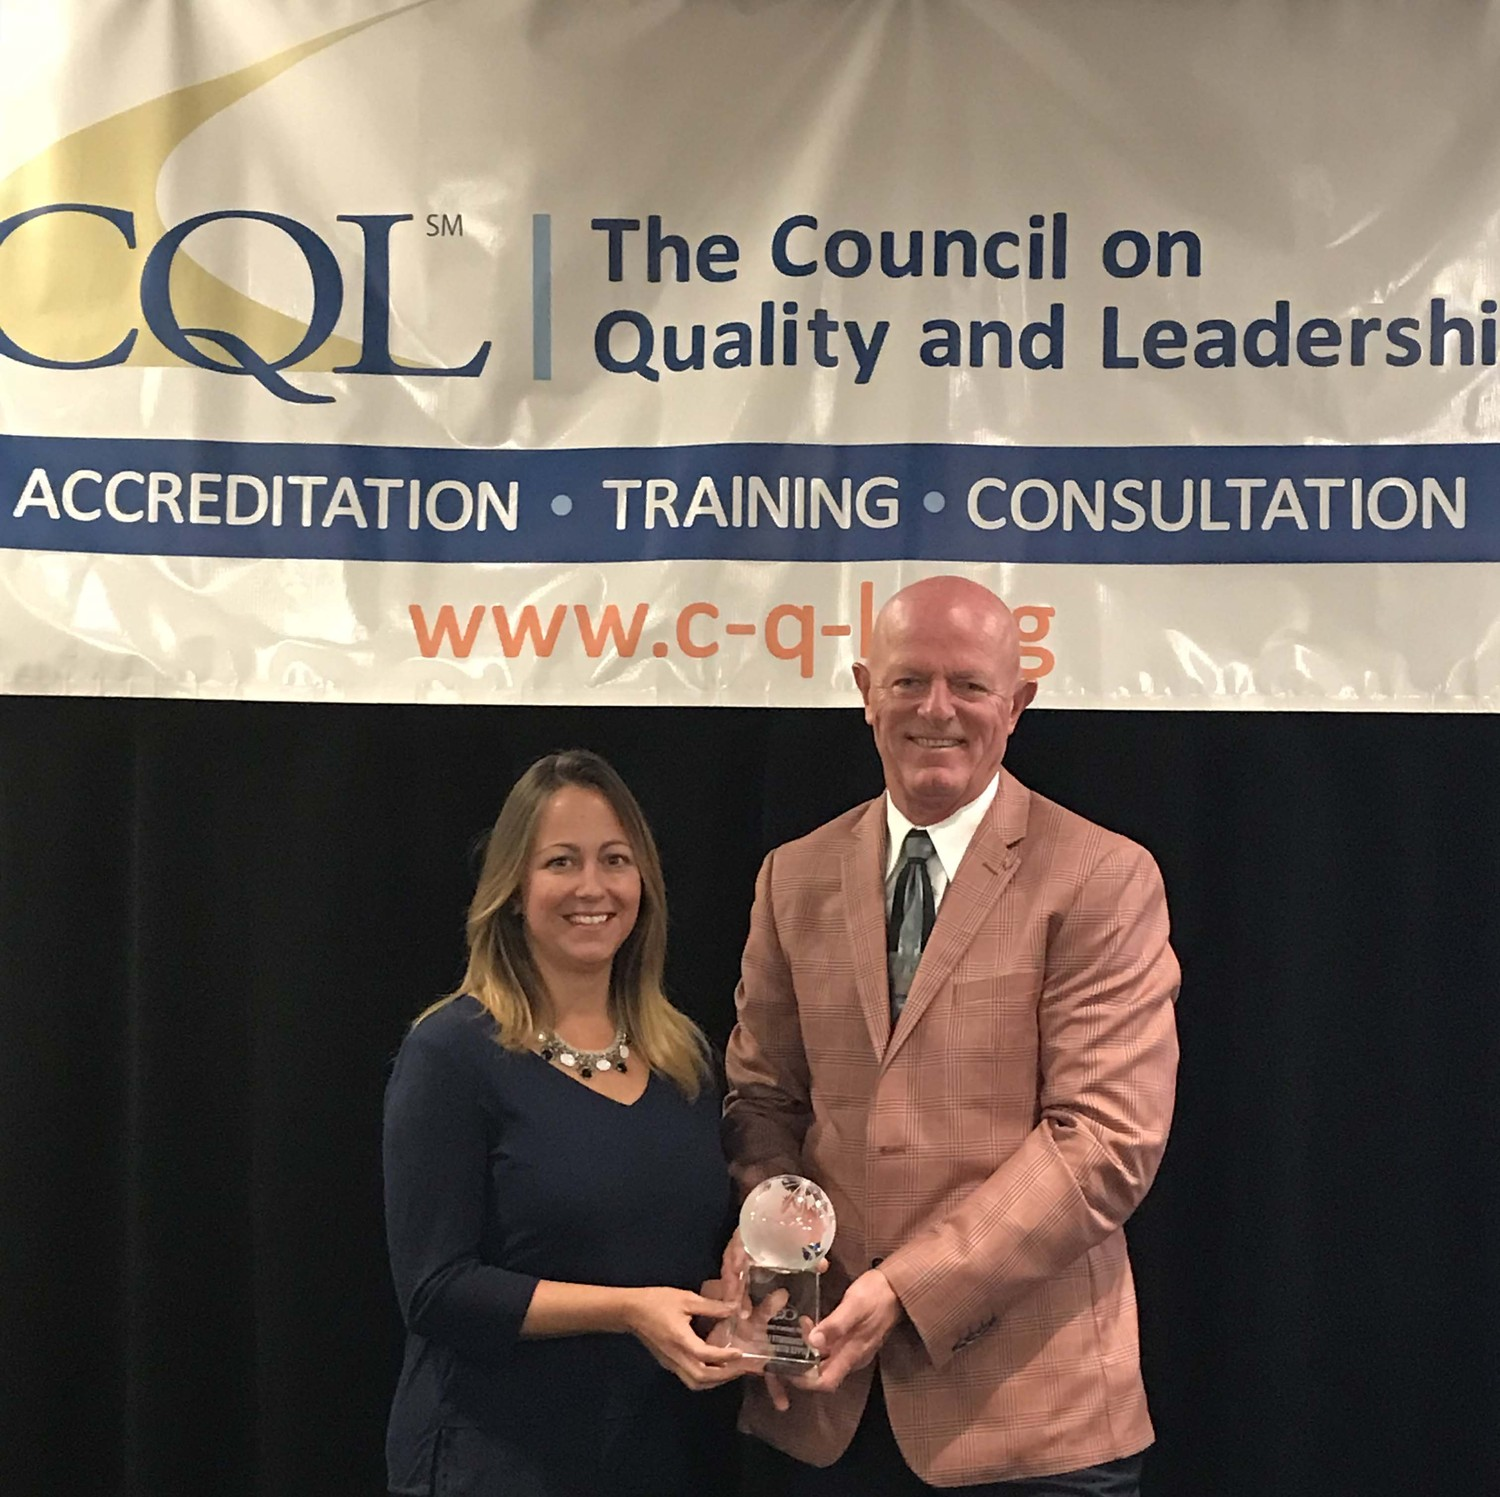 Chris Grayson, Executive Director (right) and Tina Williams, Quality Enhancement Manager (left) and accept the 2017 CQL International Award of Excellence